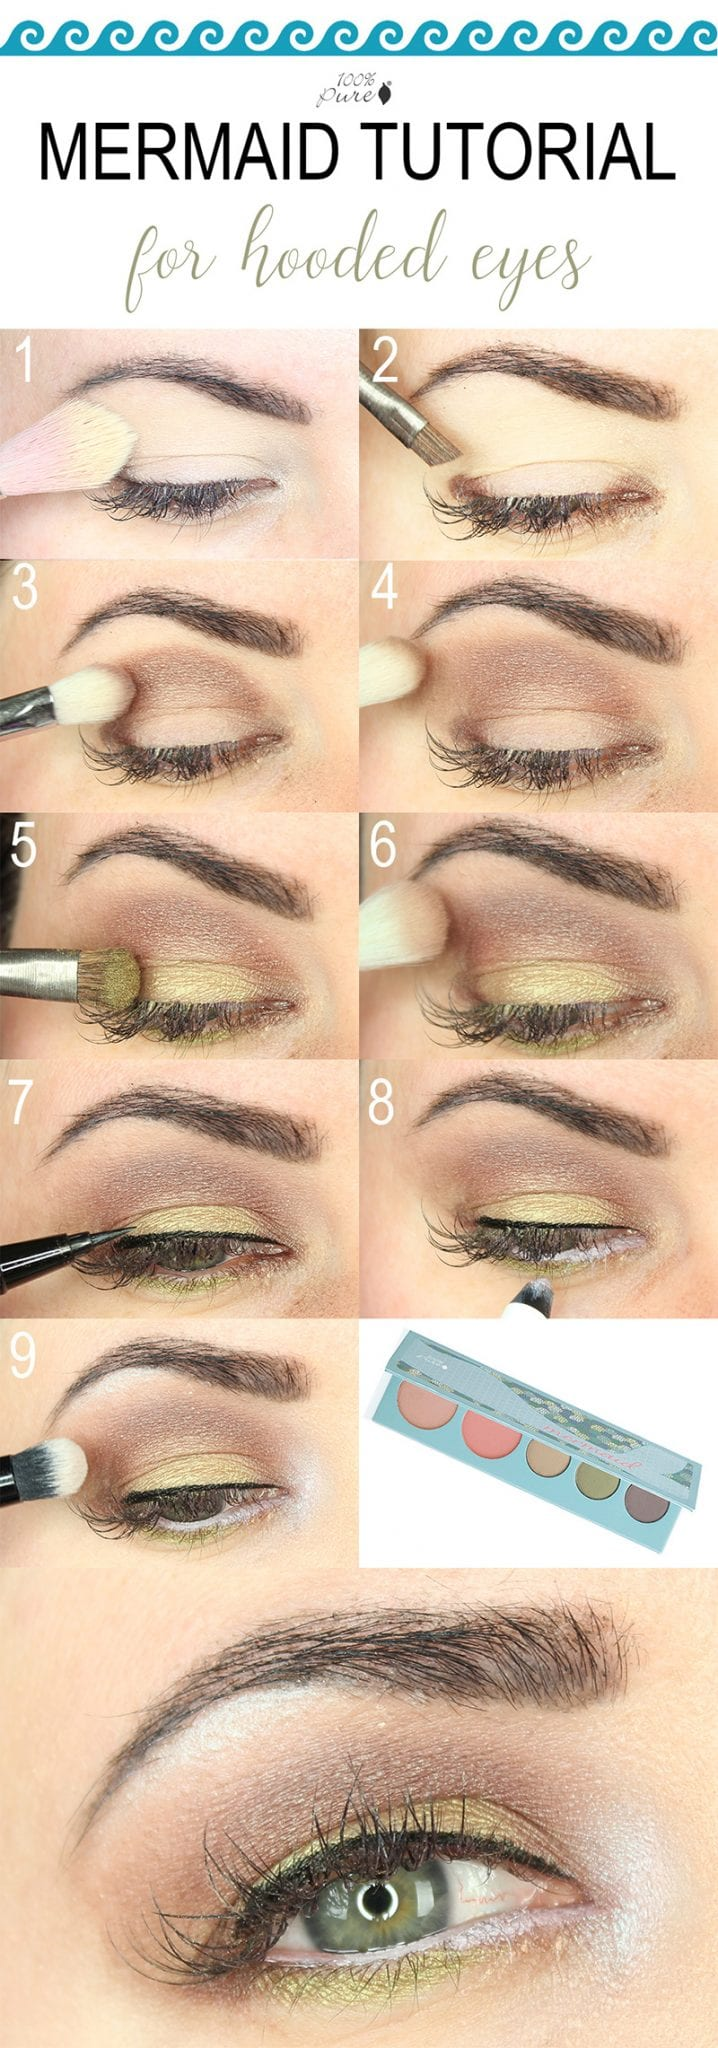 I created an easy makeup tutorial with the 100% Pure Mermaid duochrome palette. This tutorial is great for hooded eyes and can also work for monolids and downturned eyes. It's a flattering neutral look with a twist! The soft golden green and plum brown are flattering on so many different eye colors.